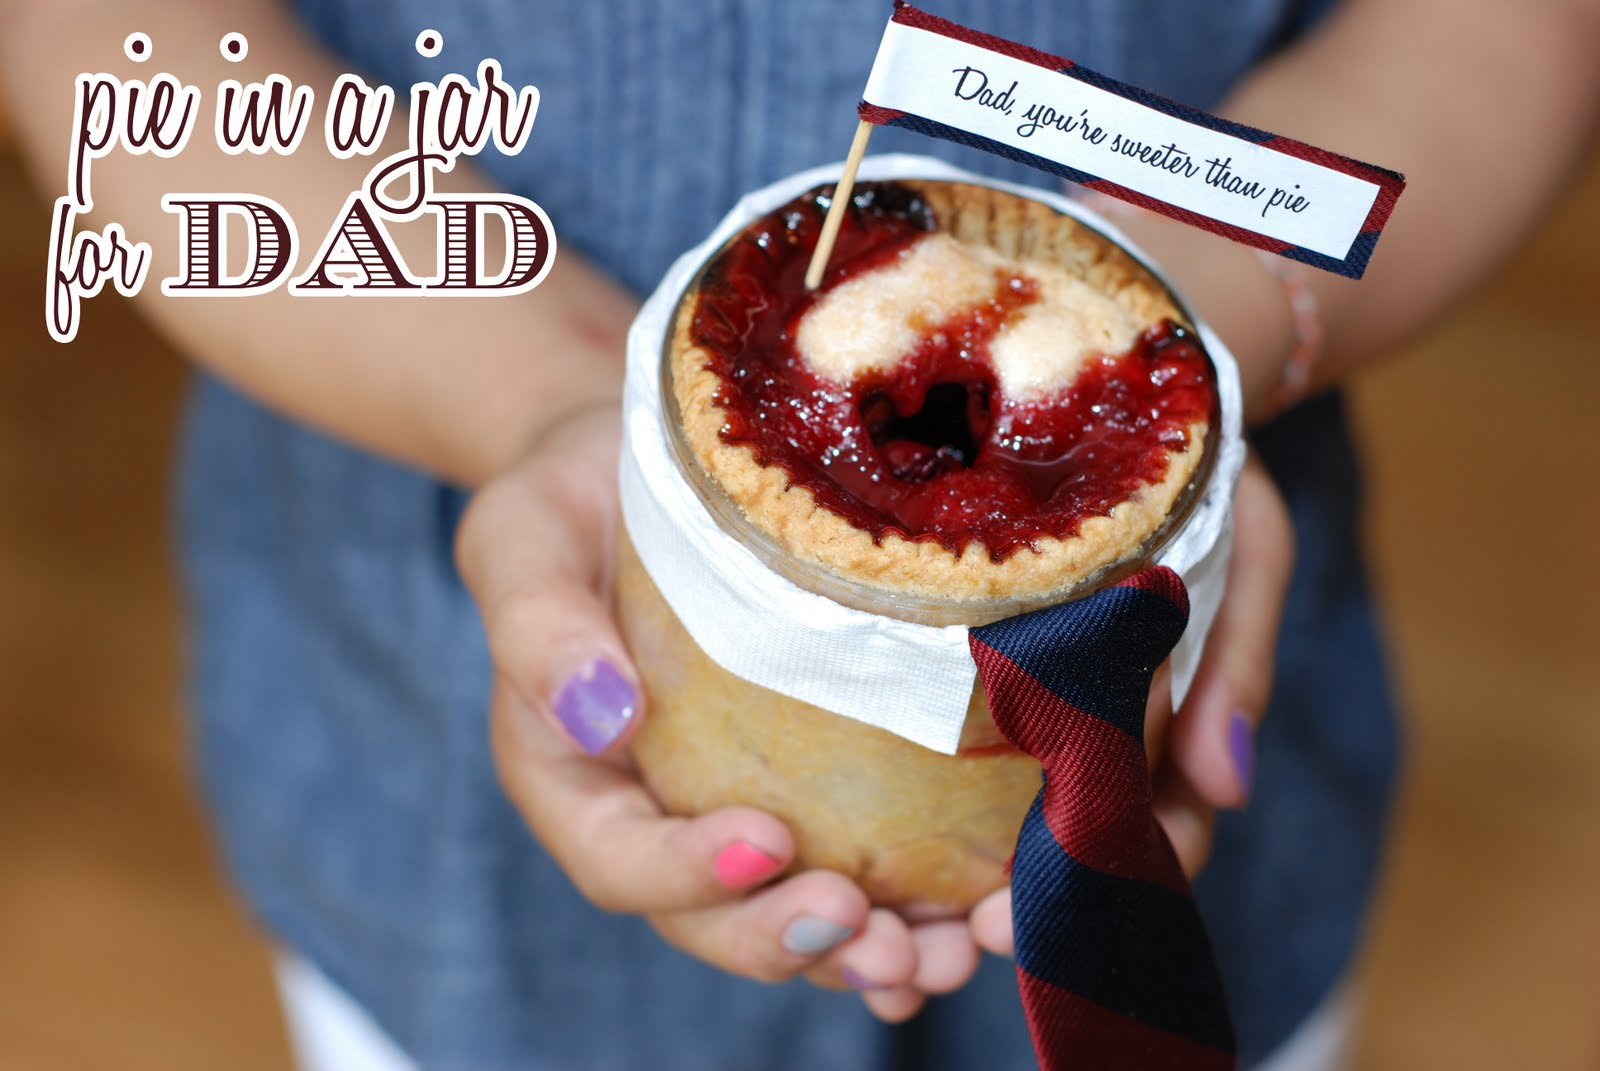 DIY Father's Day Pie in a Jar  - via BirdsParty.com